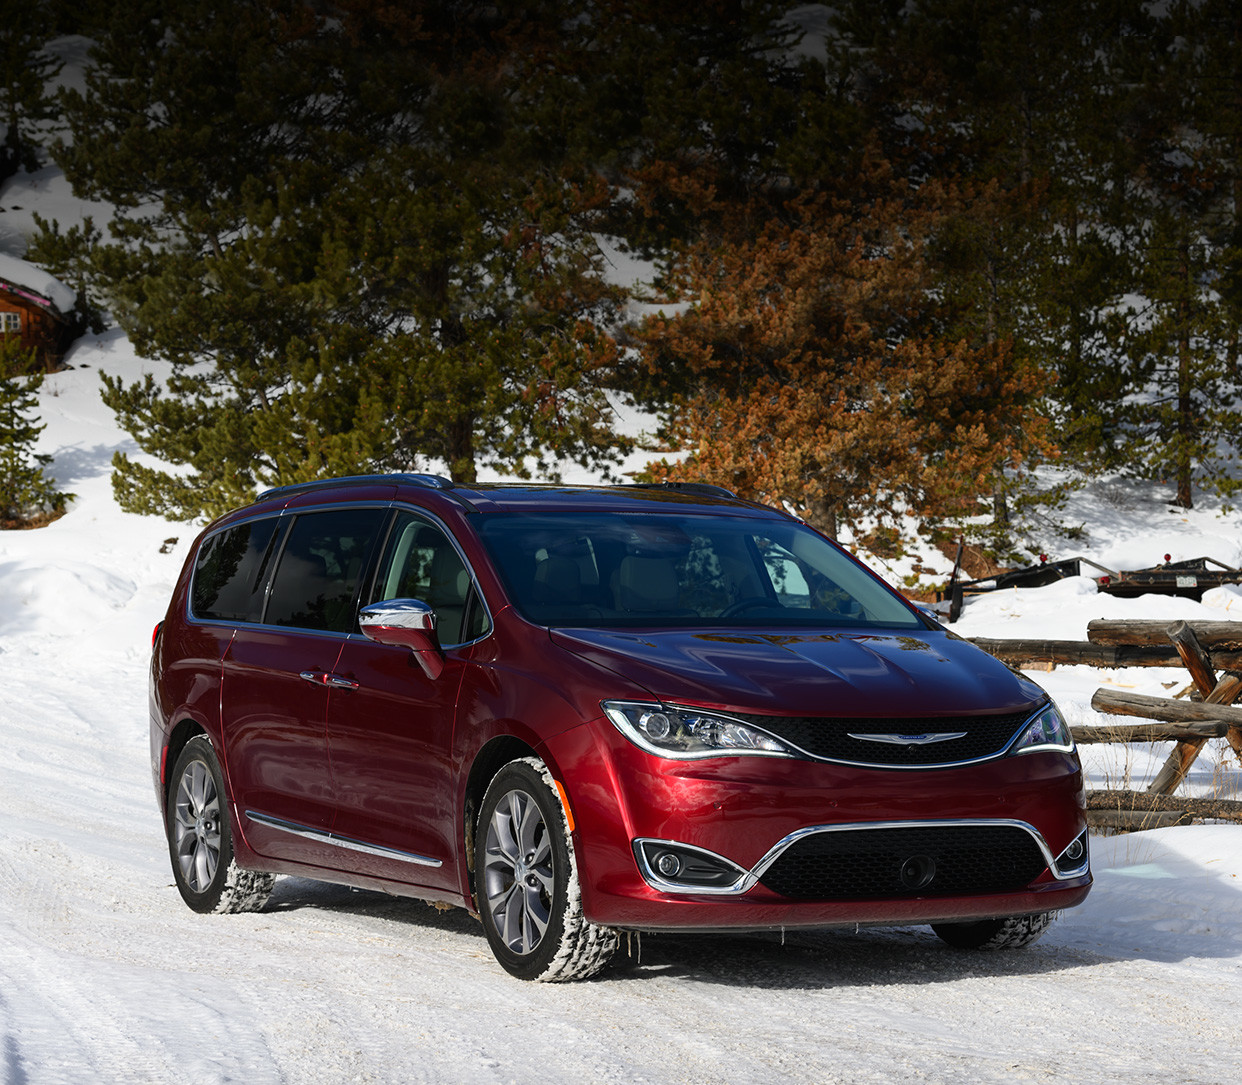 18 2018 Chrysler Pacifica Hybrid owners manual//user guide